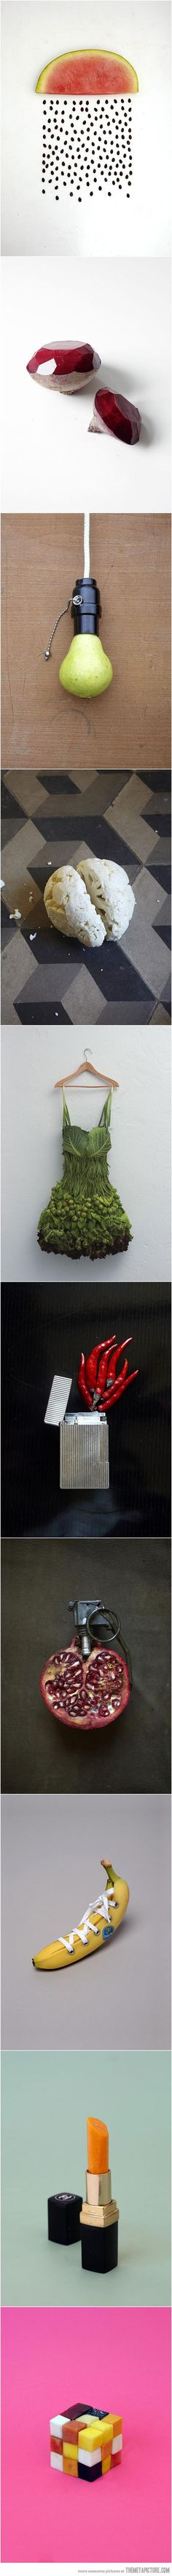 Creative food art…